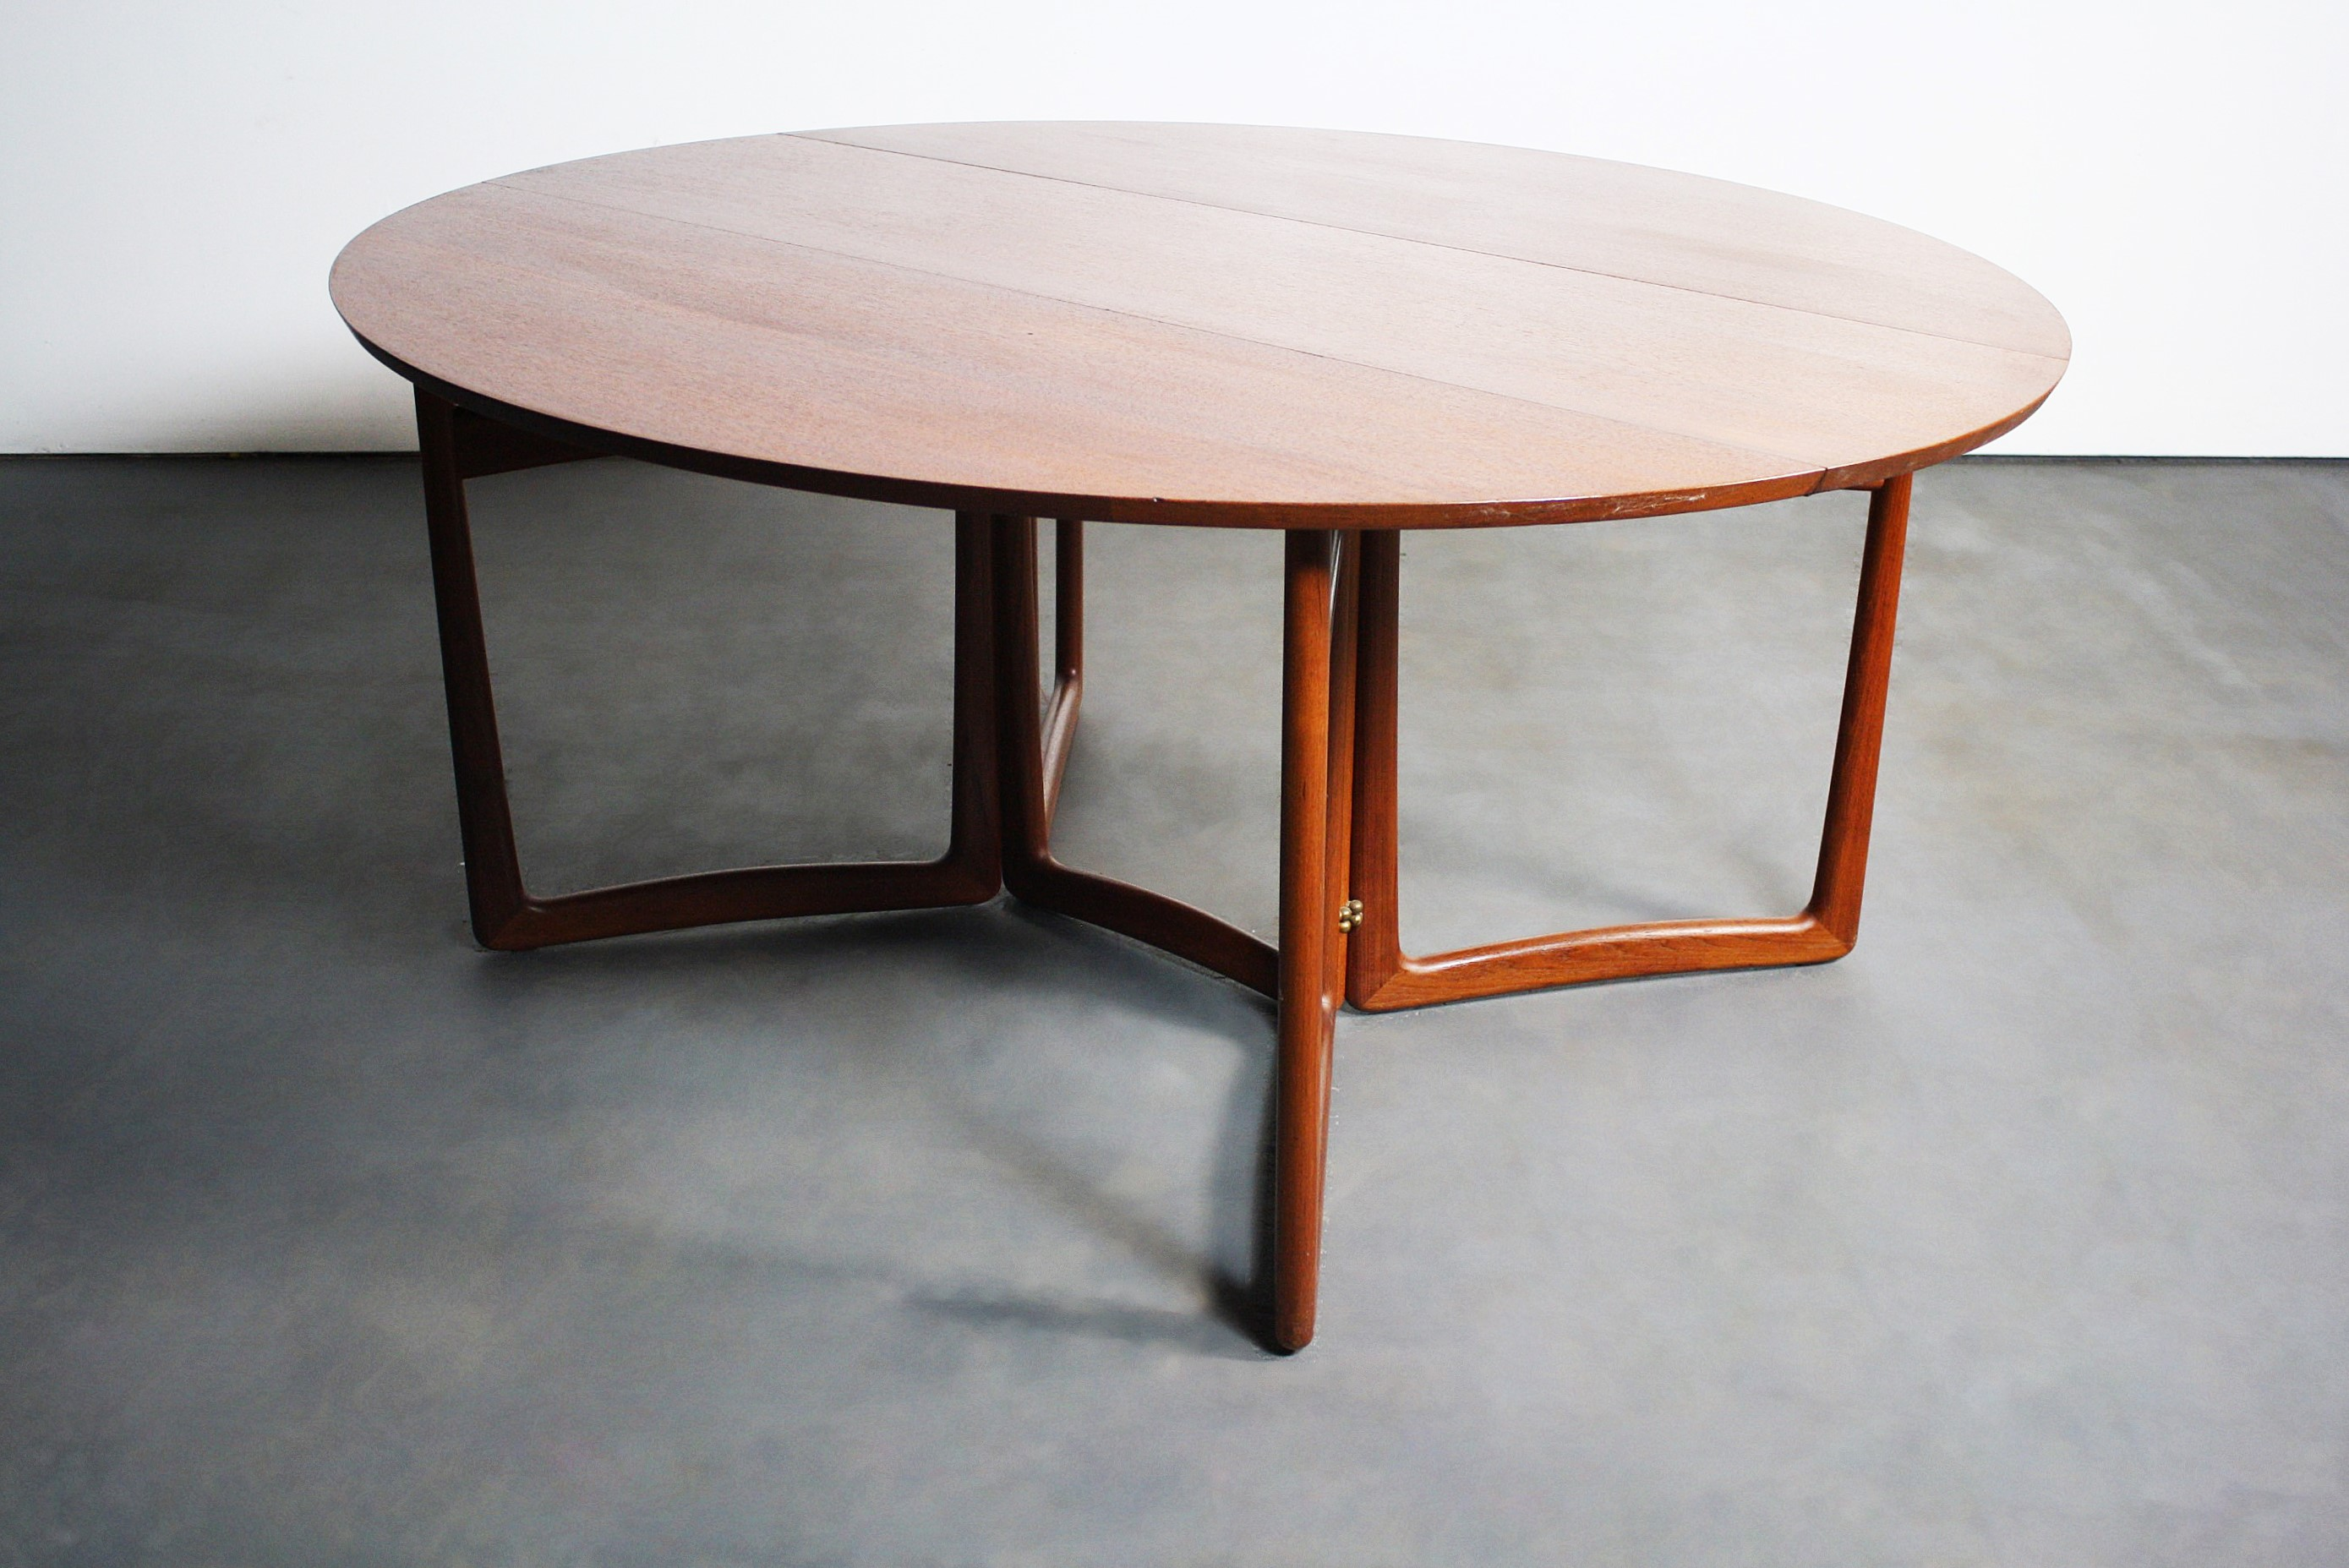 Leaf dining table 4 dining chairs buy butterfly drop leaf dining - Peter Hvidt Amp Orla M 248 Lgaard Nielsen Dining Table Chairish